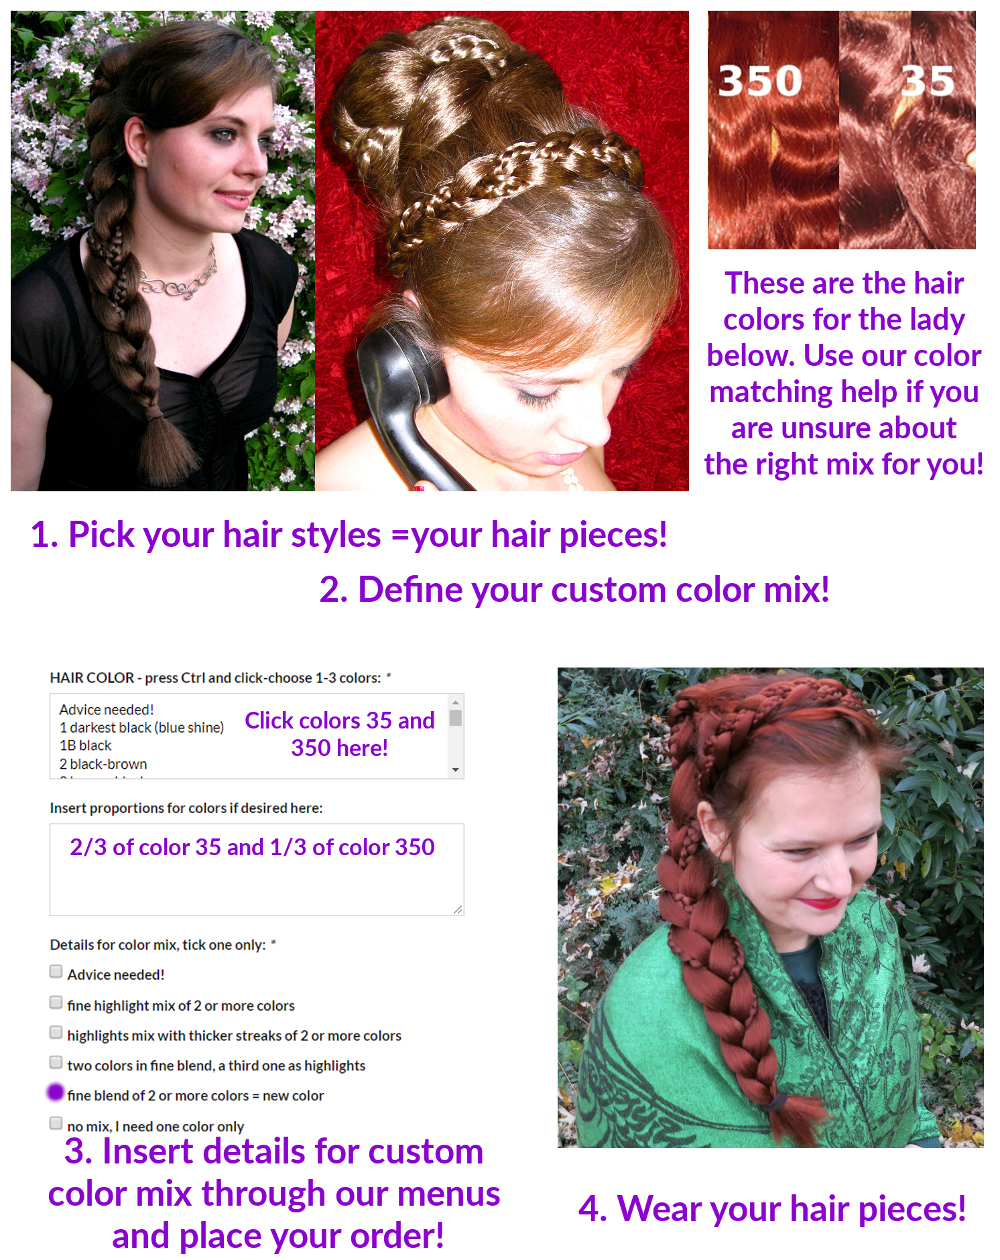 How to order custom color hair pieces - picture instructions!